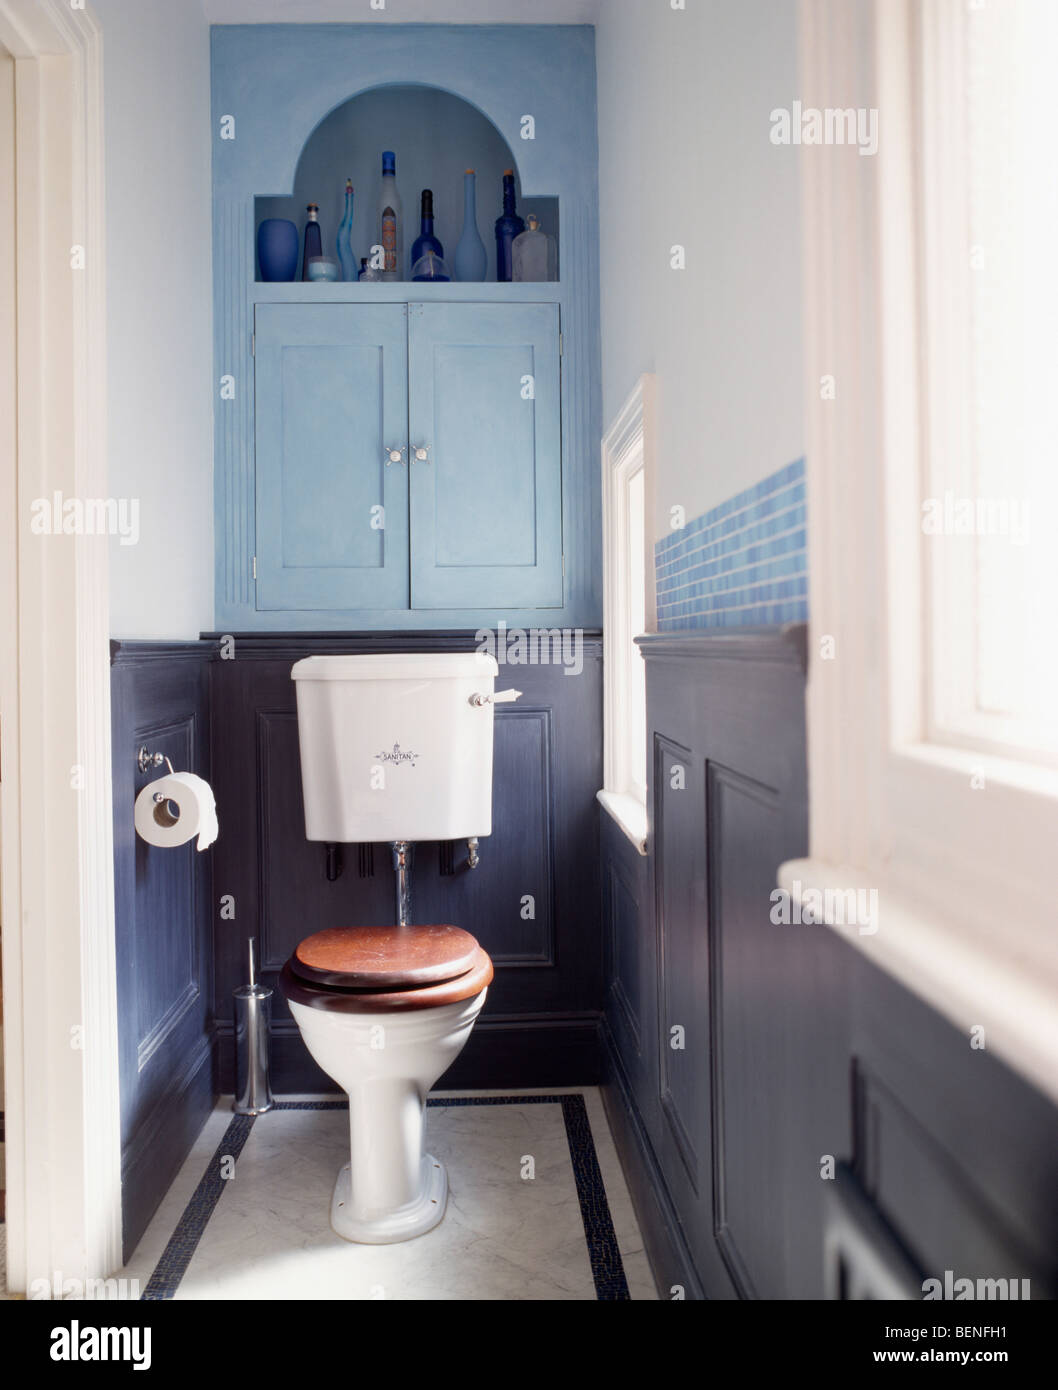 buy kitchen sink glad bags pale blue fitted cupboard above toilet with mahogany seat ...